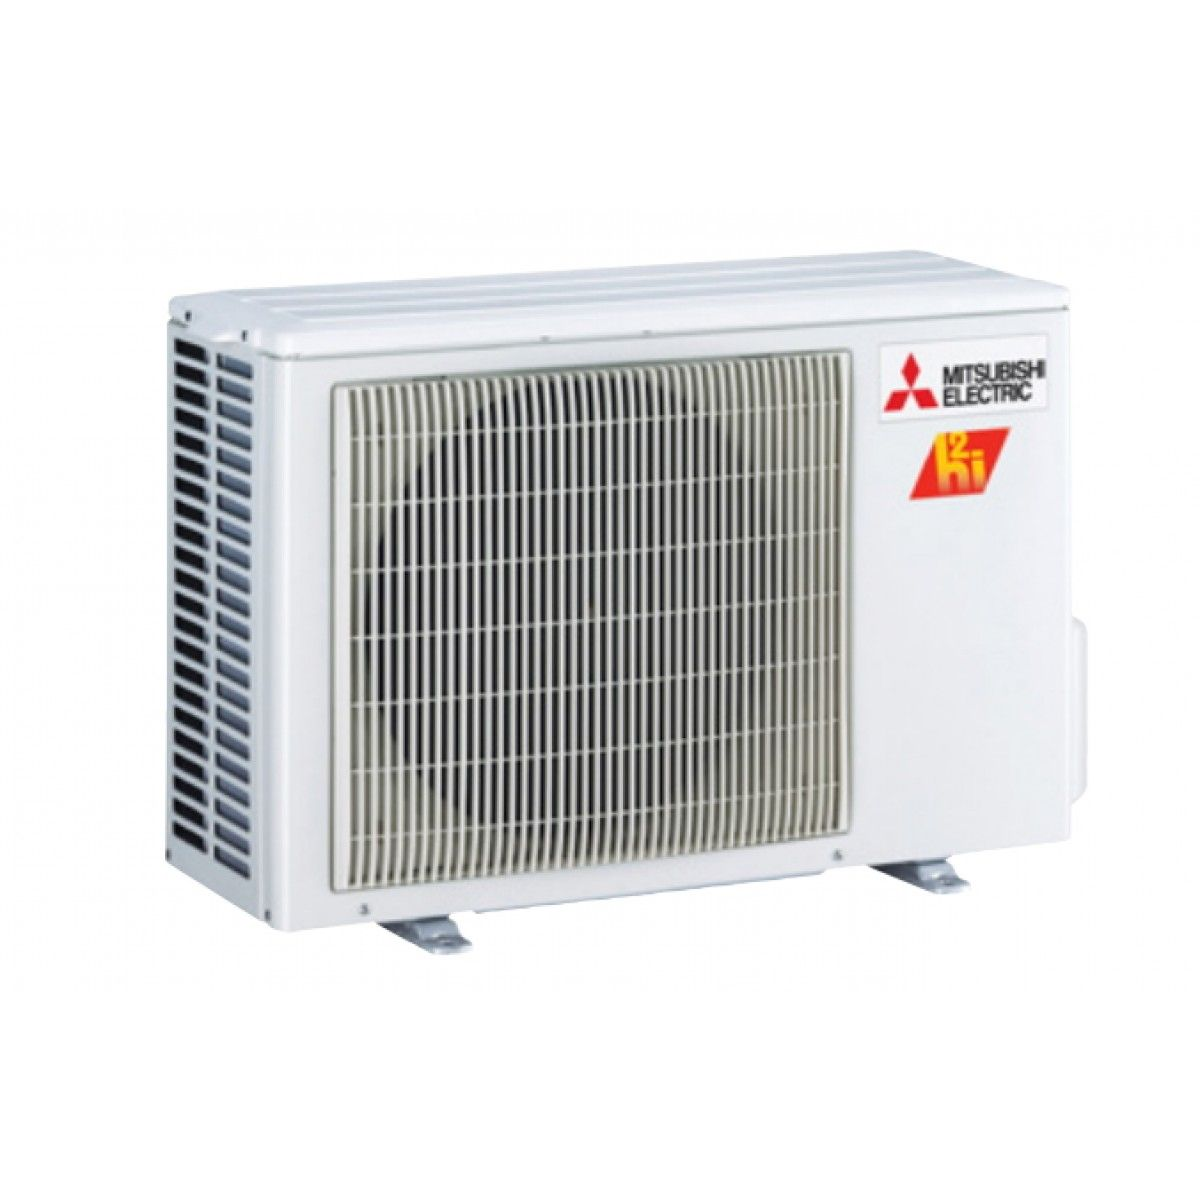 Mitsubishi 9k btu hyper heat condenser for floor mount Ductless ac